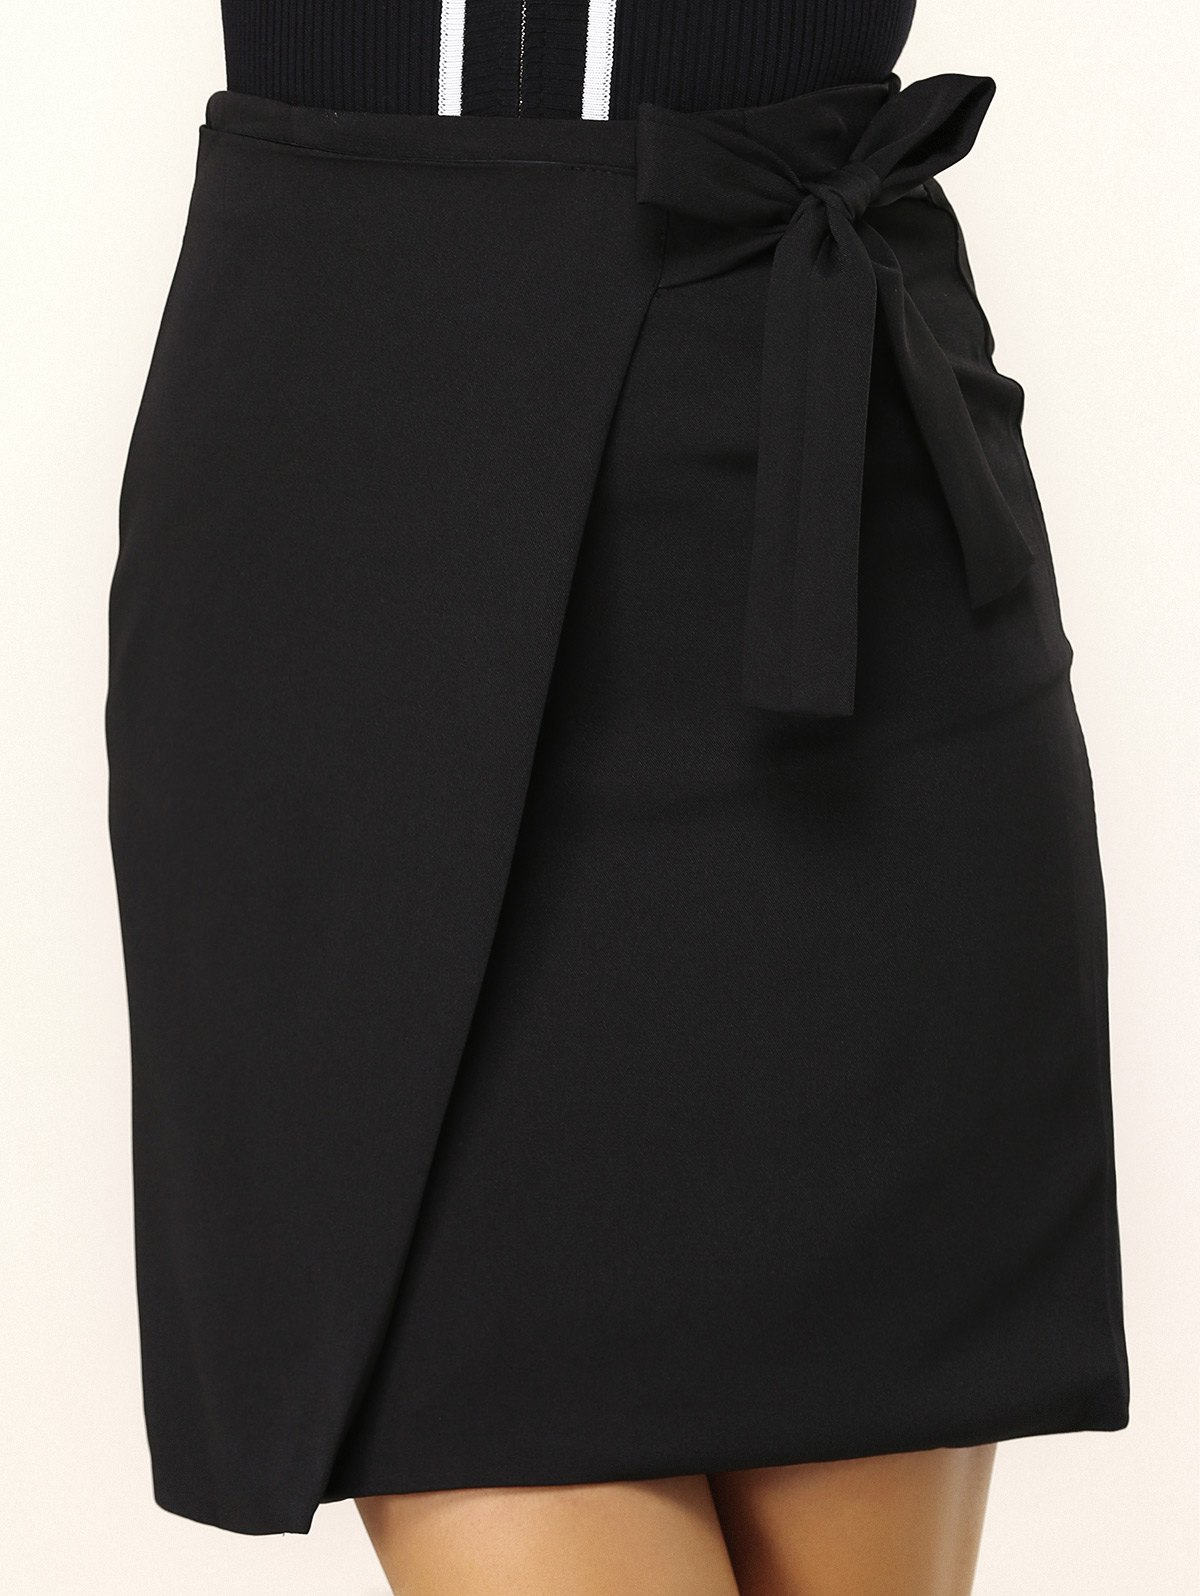 Solid Color Side Strappy Wrap Skirt - M BLACK